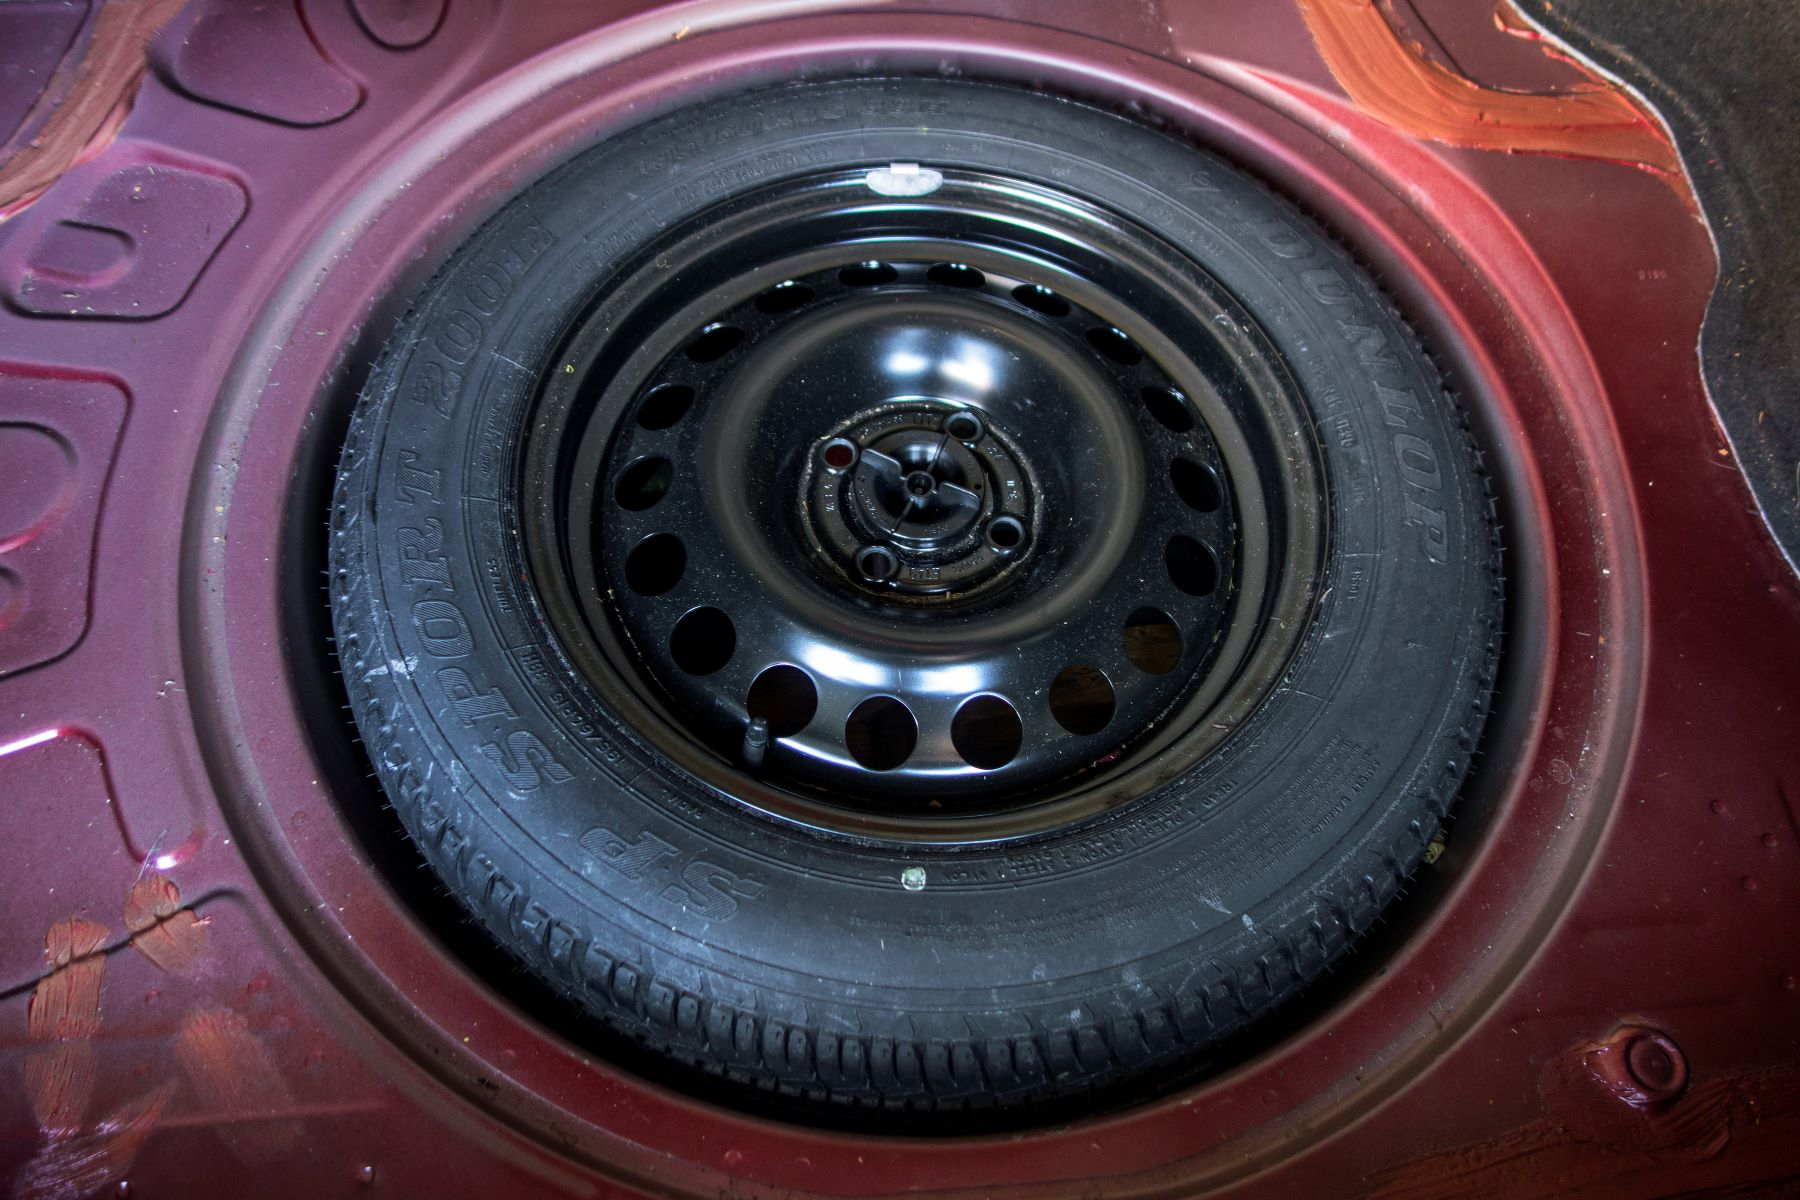 A full-size spare tire stowed in the trunk of a car